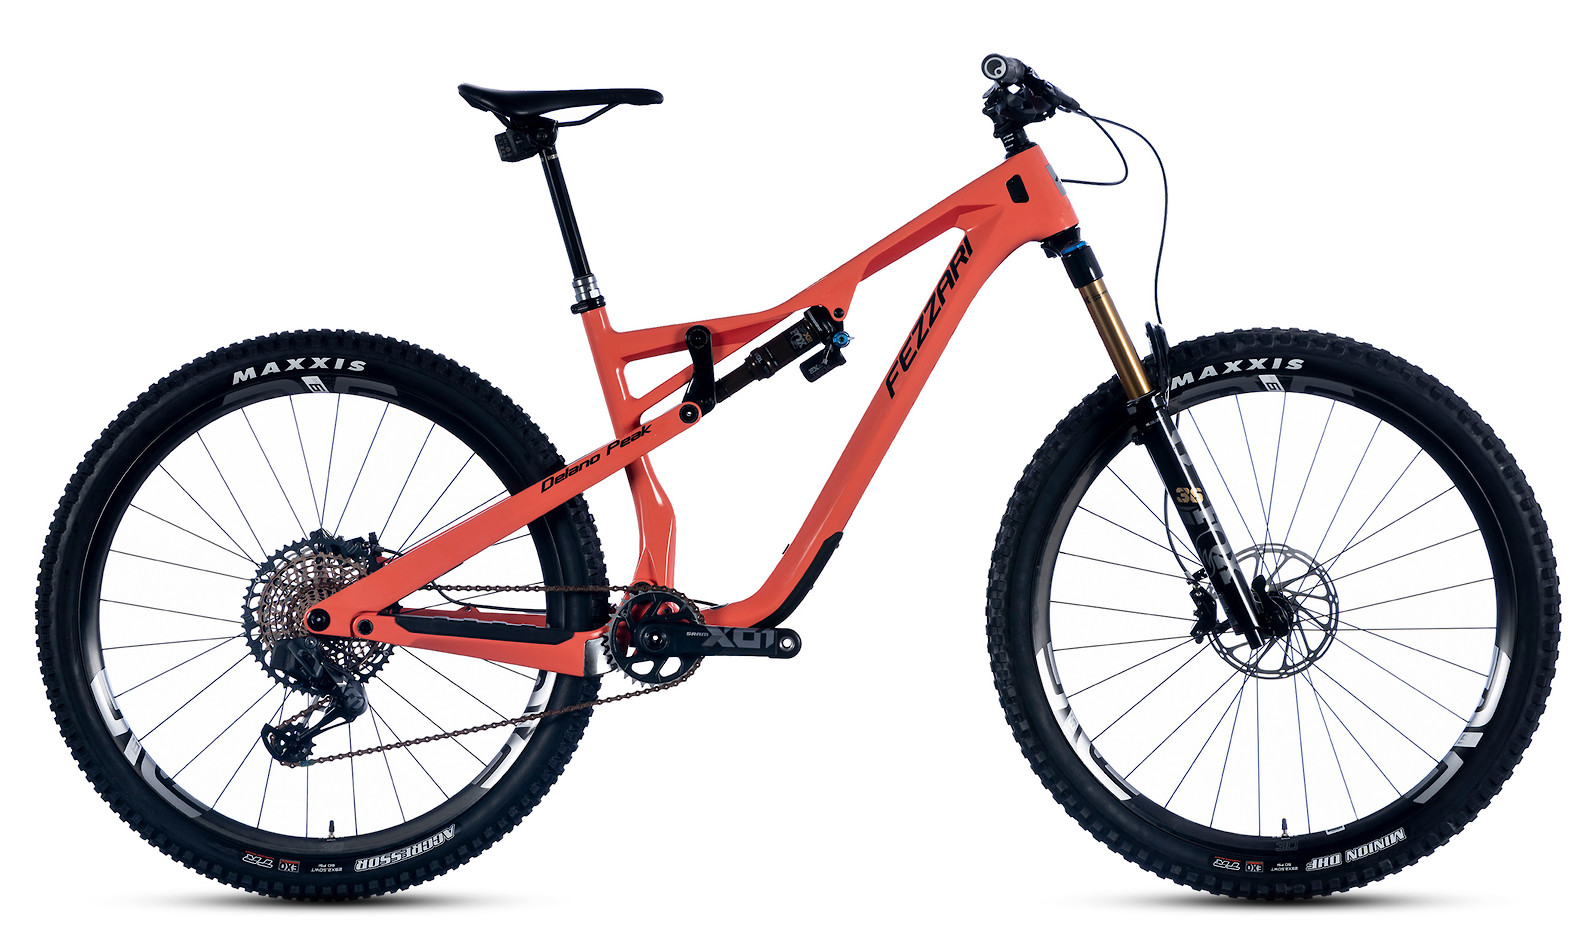 2020 Fezzari Delano Peak Team (Coral Dune; AXS build shown)